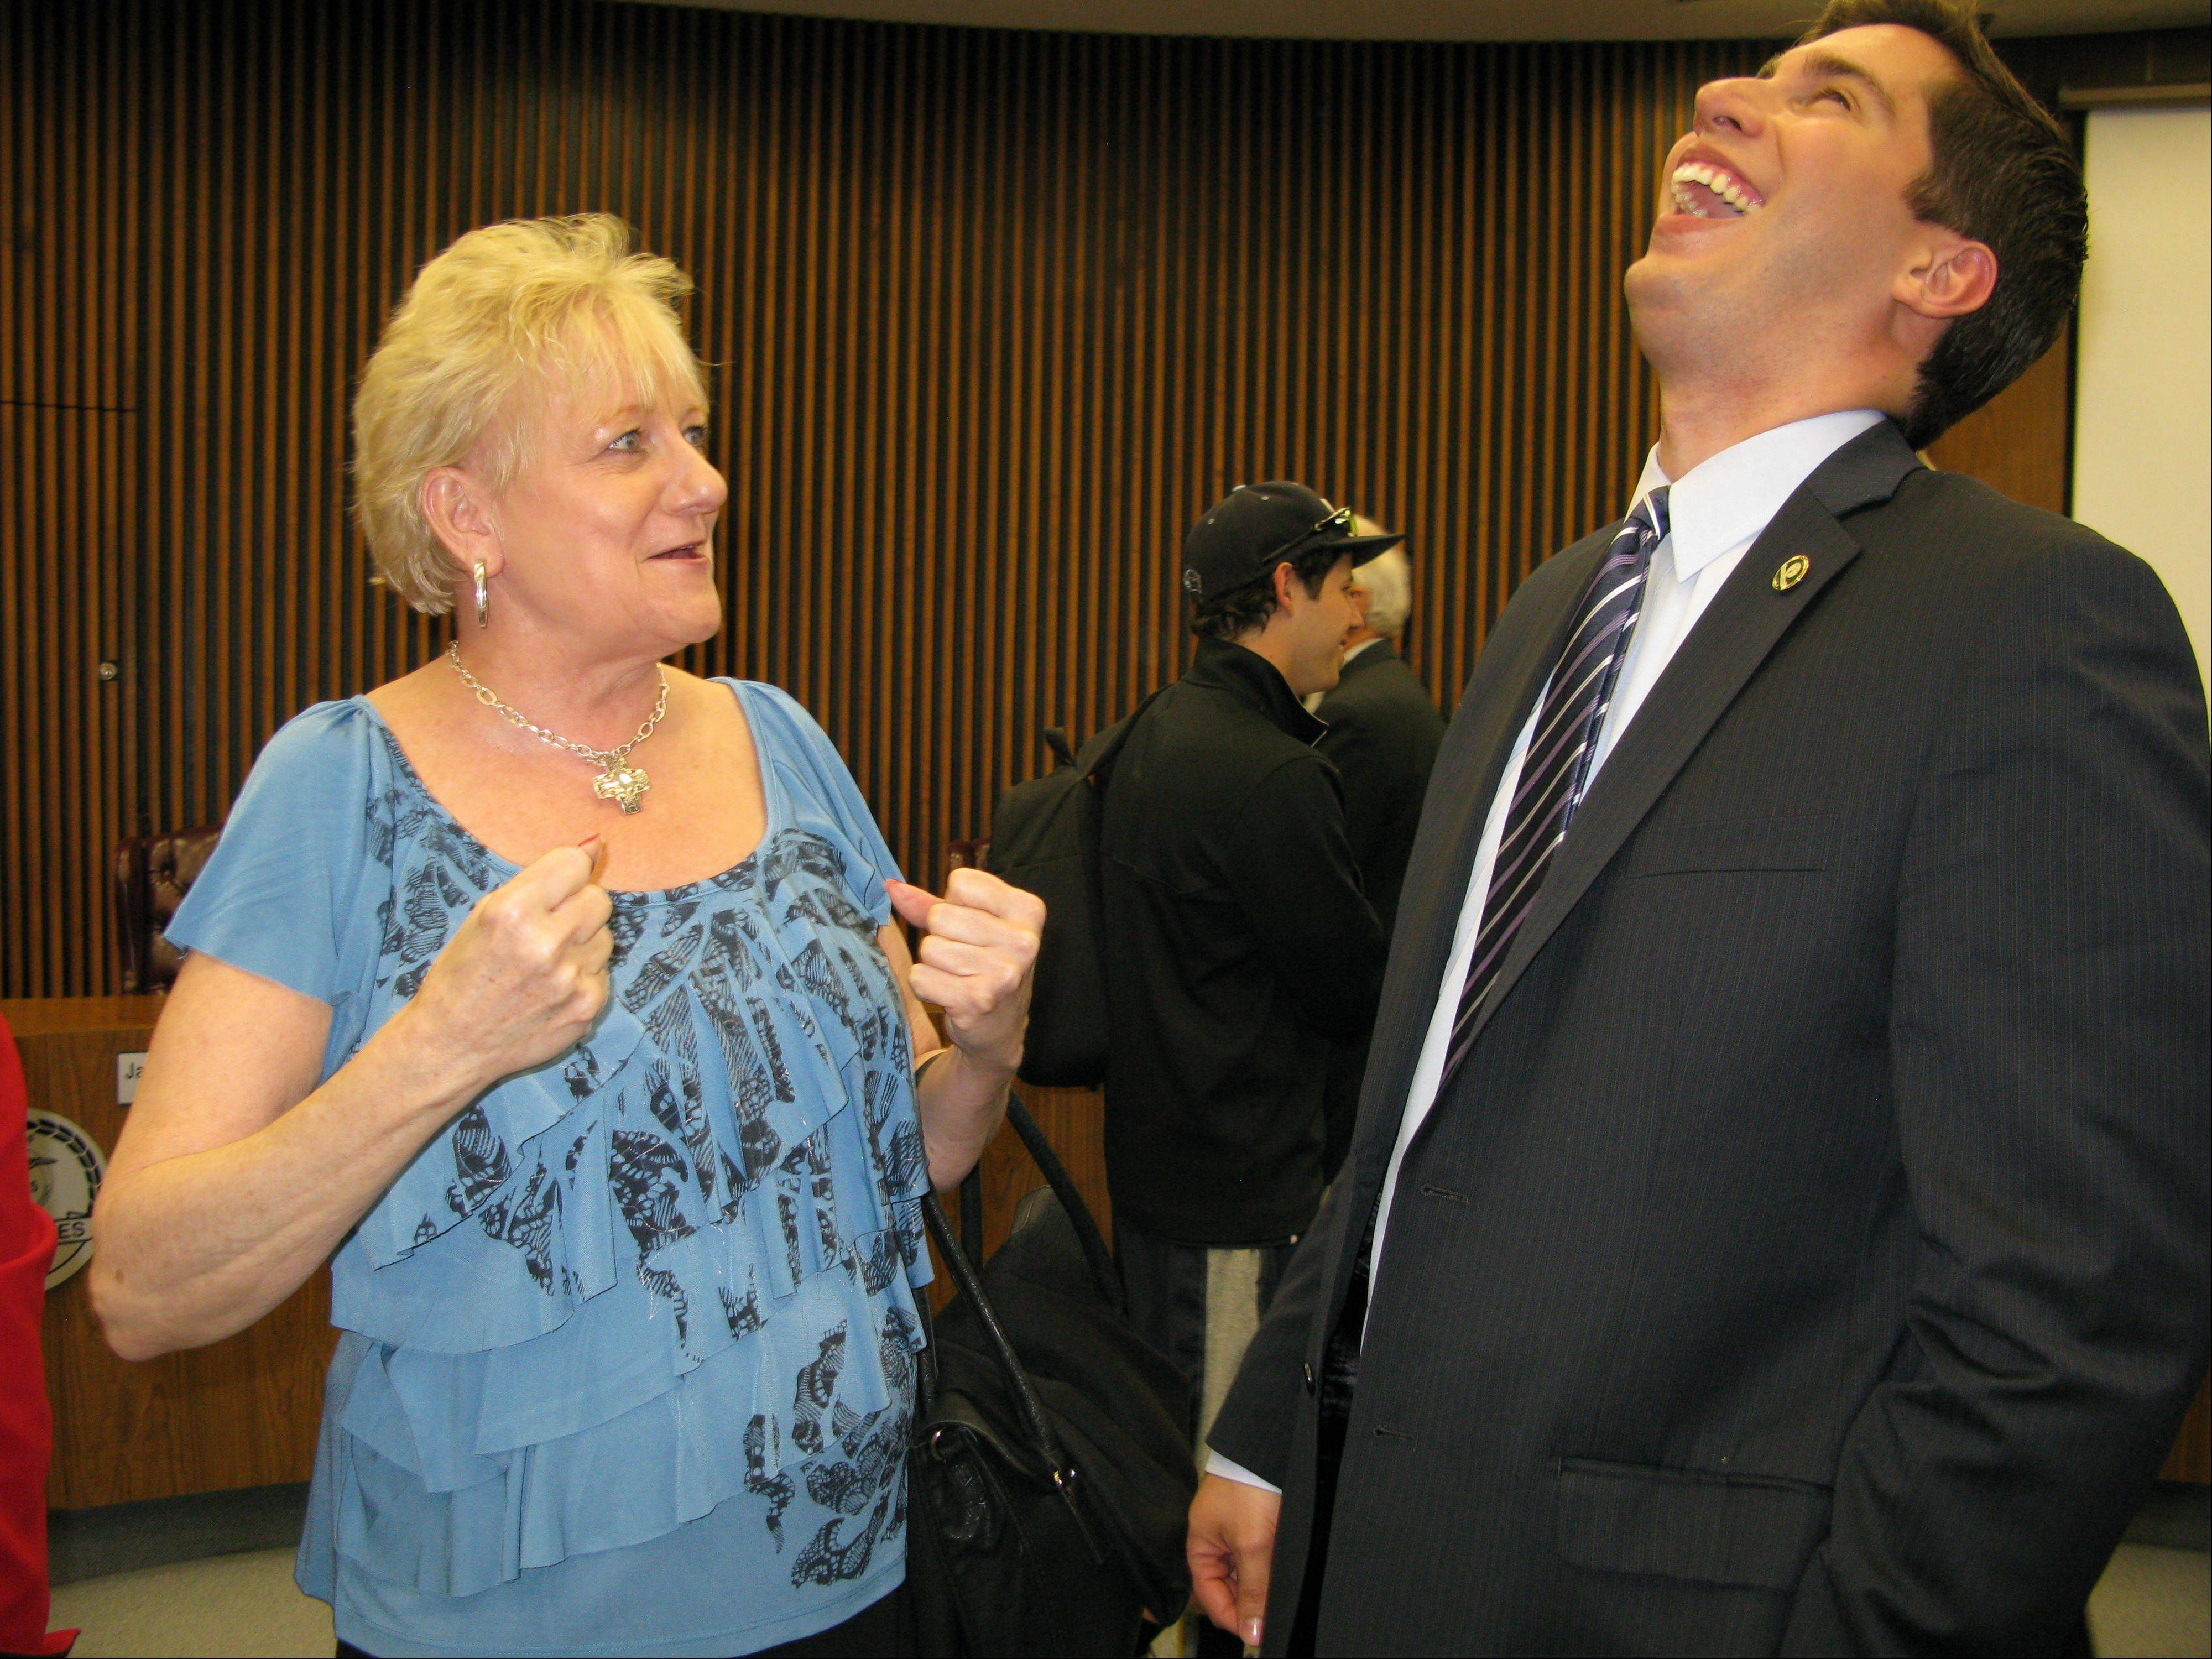 Des Plaines Mayor Matt Bogusz shares a laugh with Debbie Crowell, who worked on his election campaign, after being sworn in Monday.